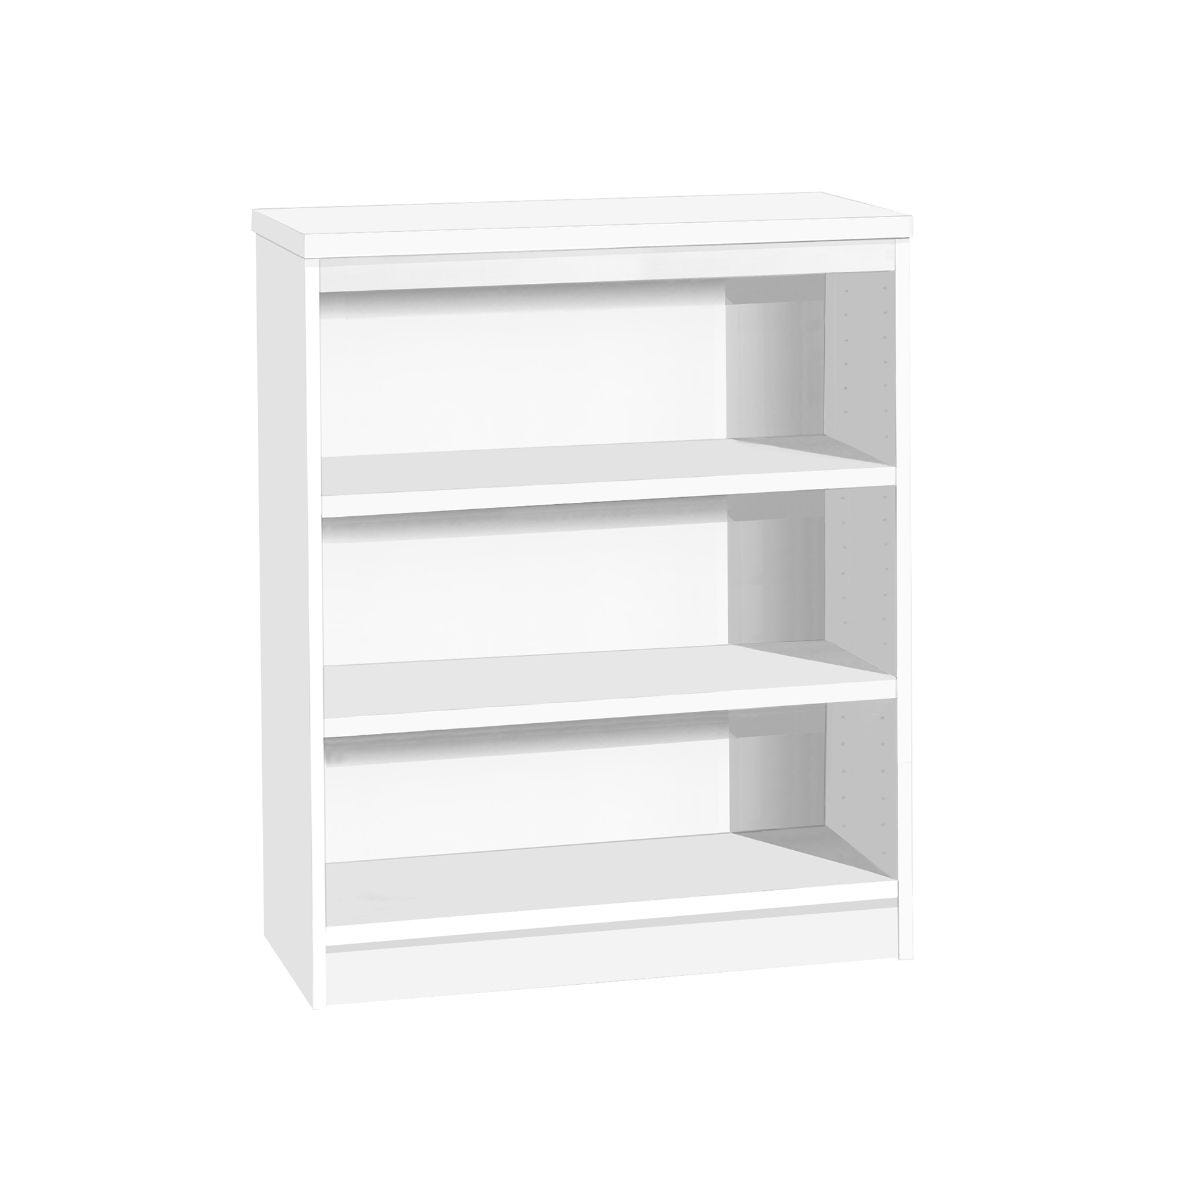 R White Mid Height Bookcase Wide, White